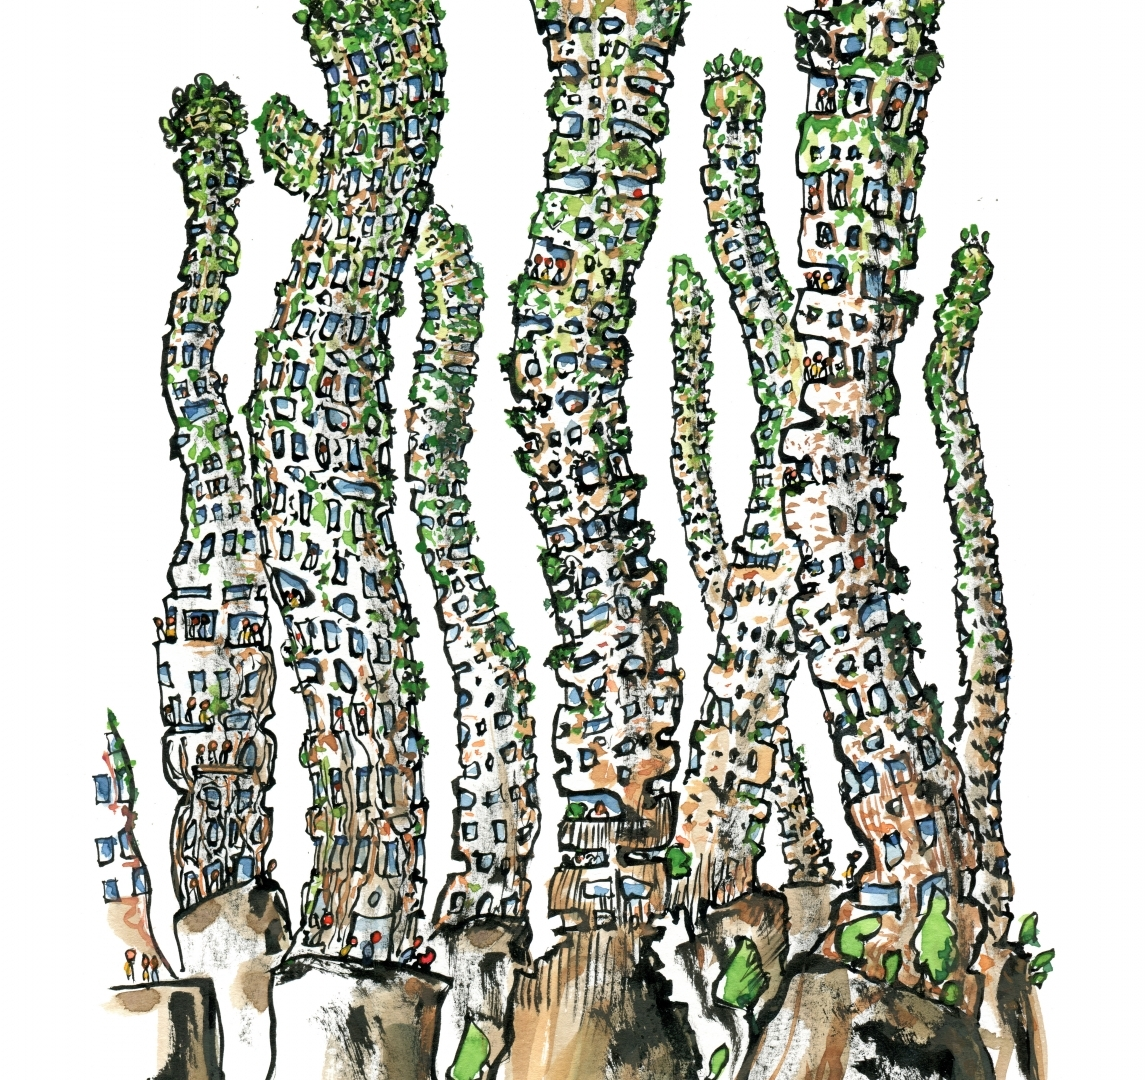 Drawing of a tall green organic building covered by plants